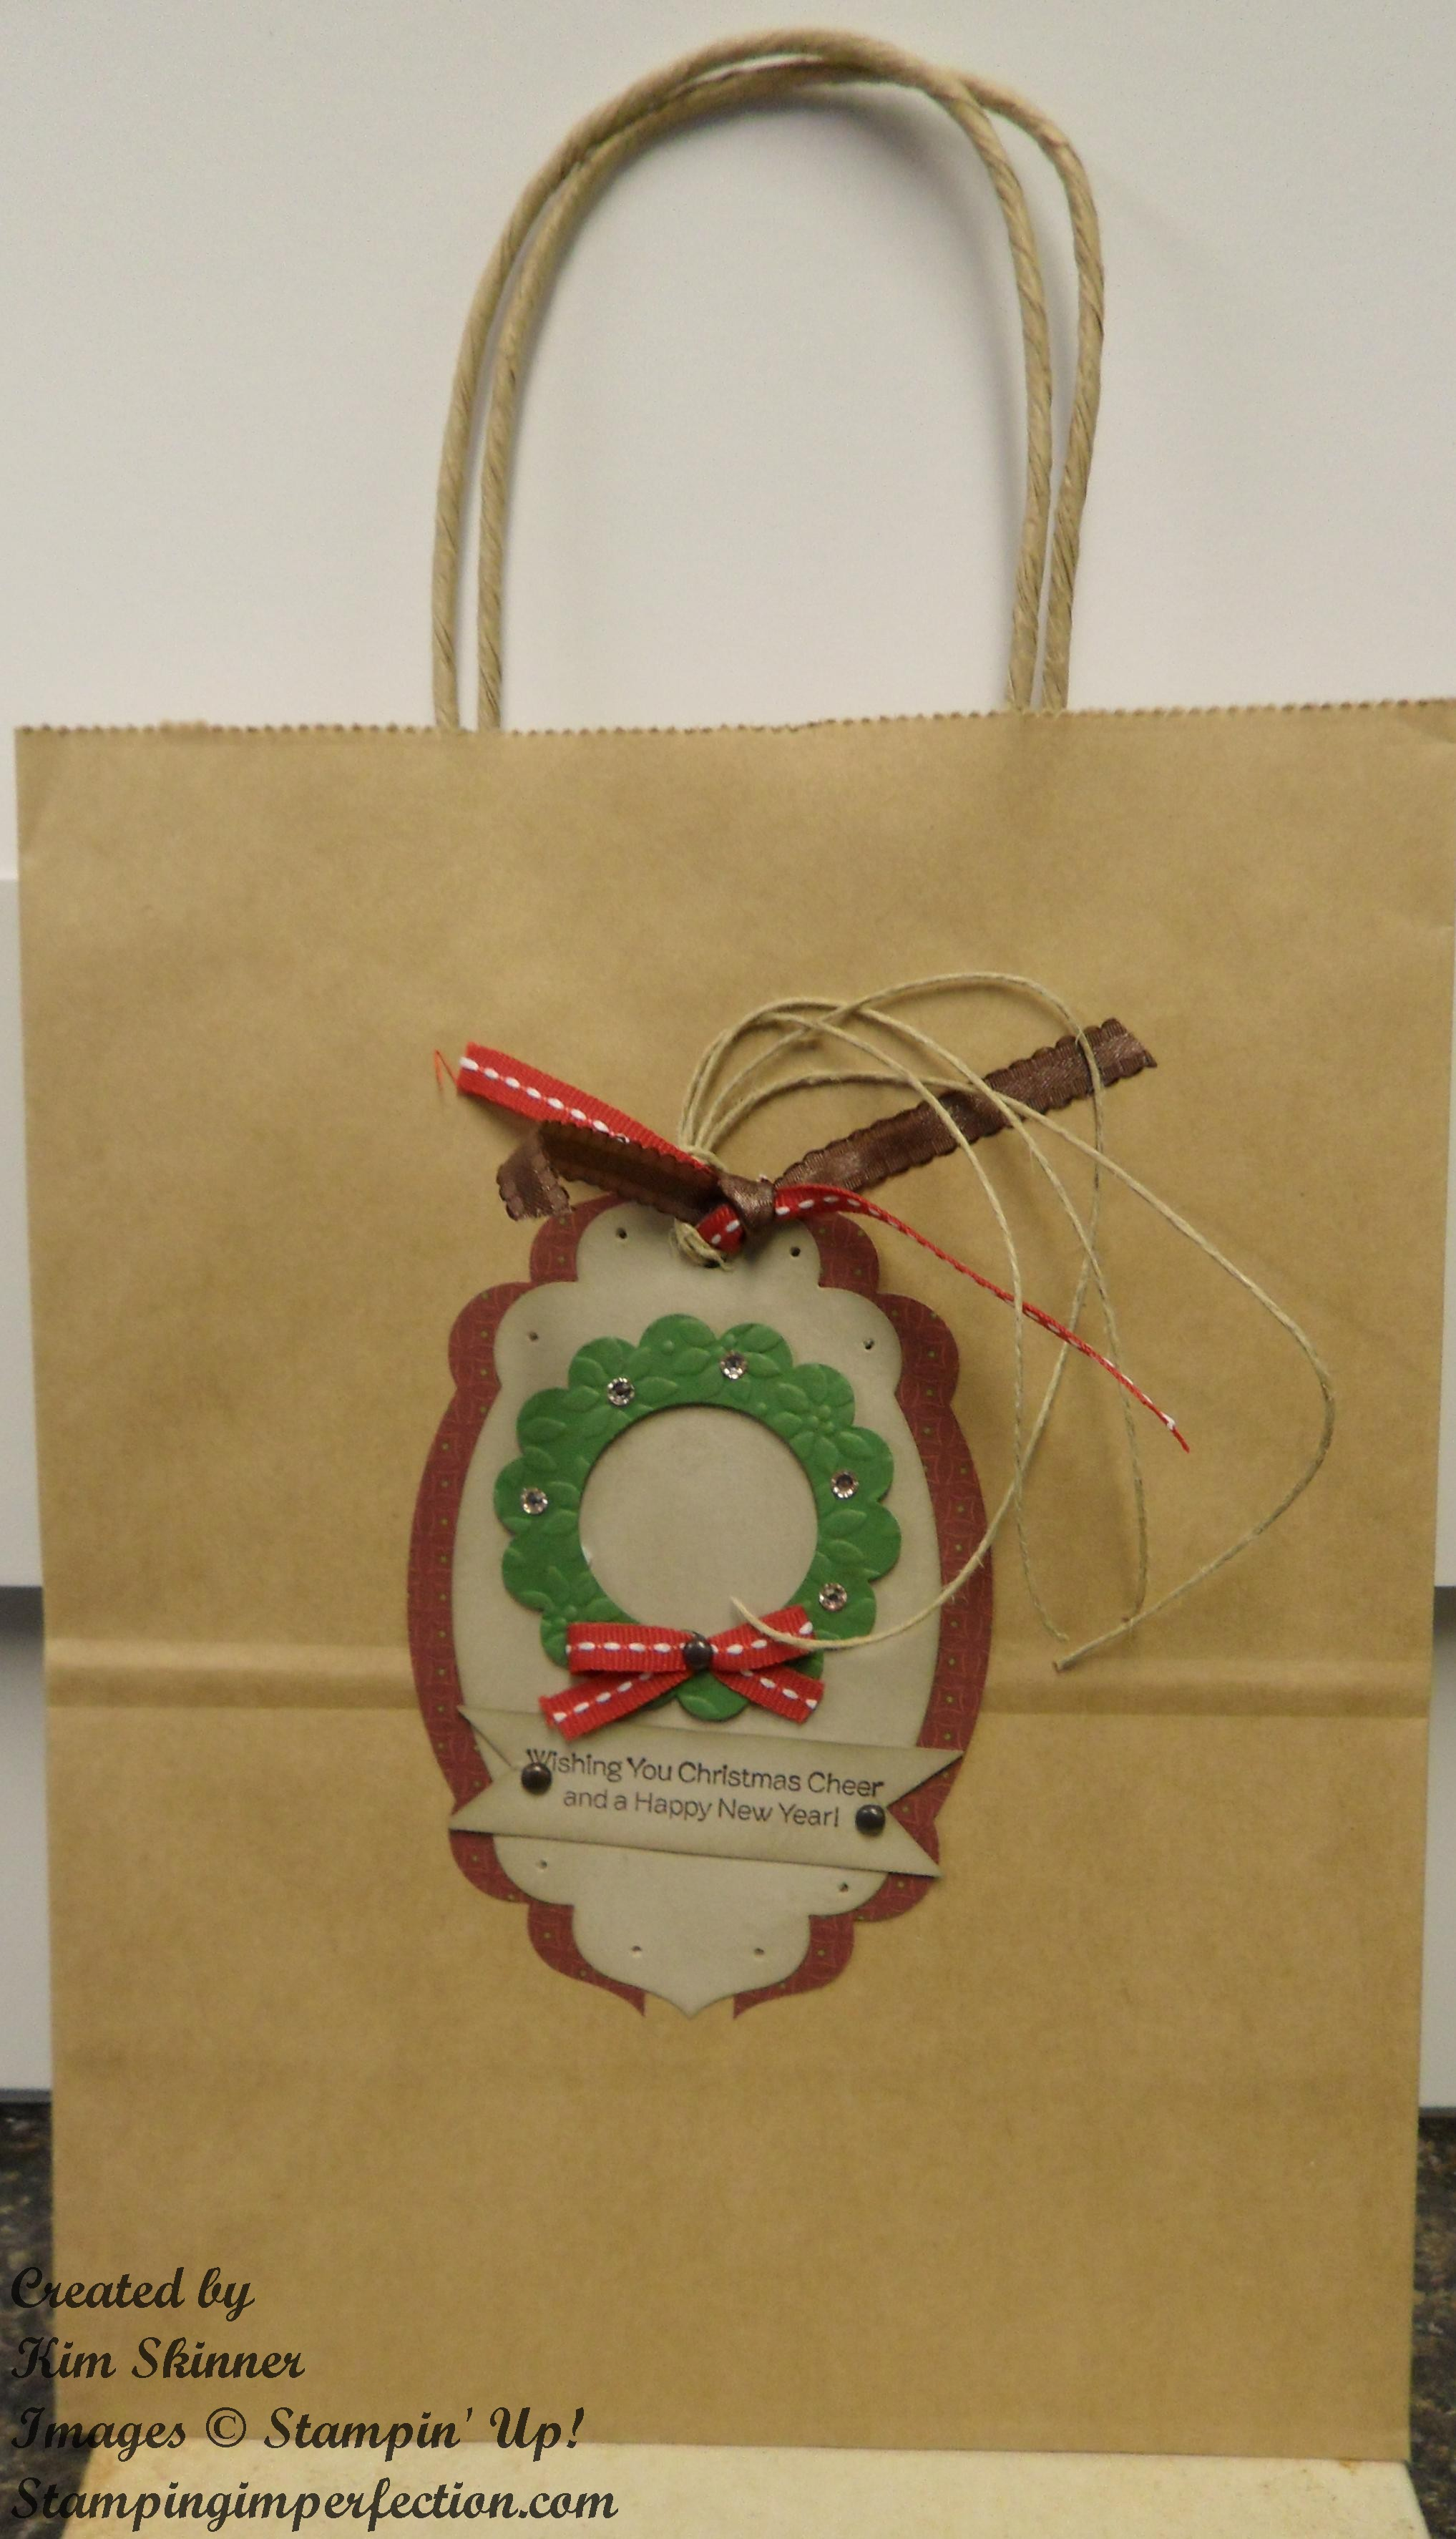 Decorate Bags to Wrap Your Gifts